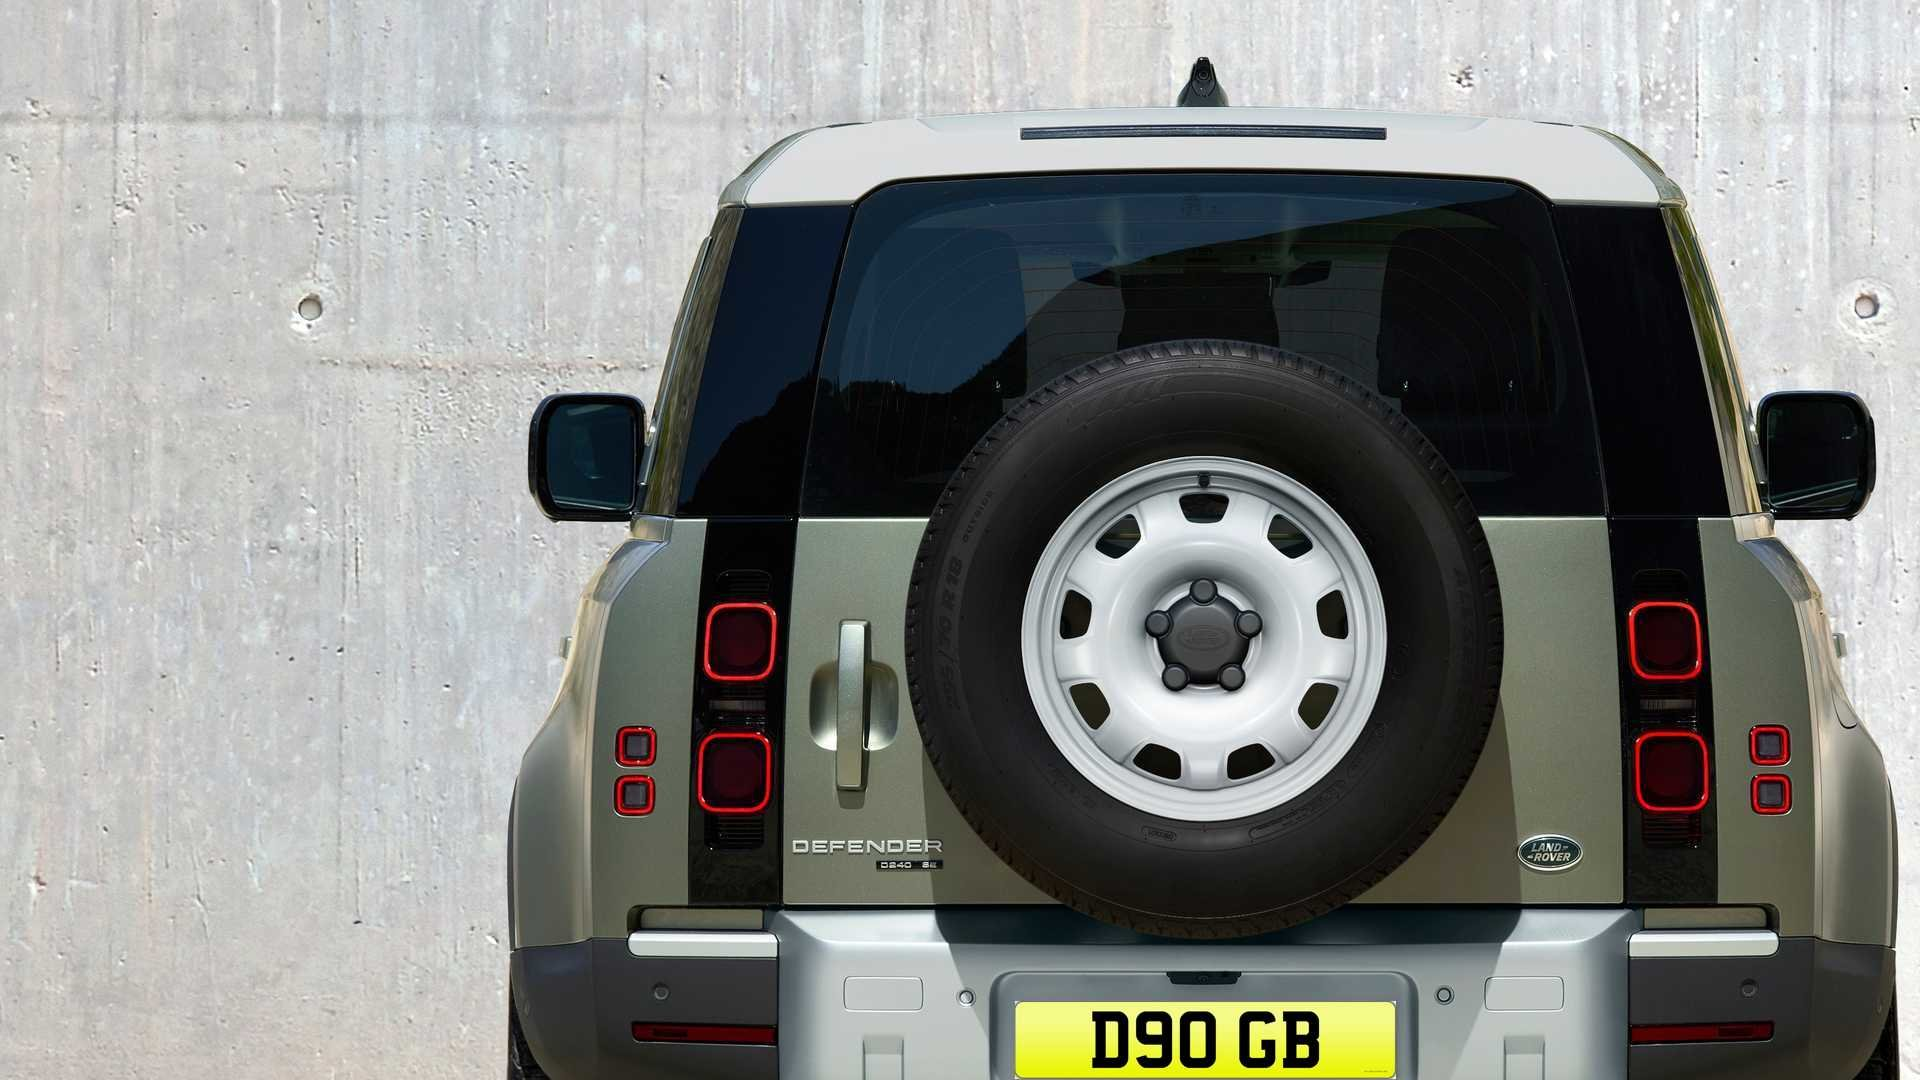 1986 D90 GB - Registration Plate for Defender 90. For Sale (picture 2 of 3)